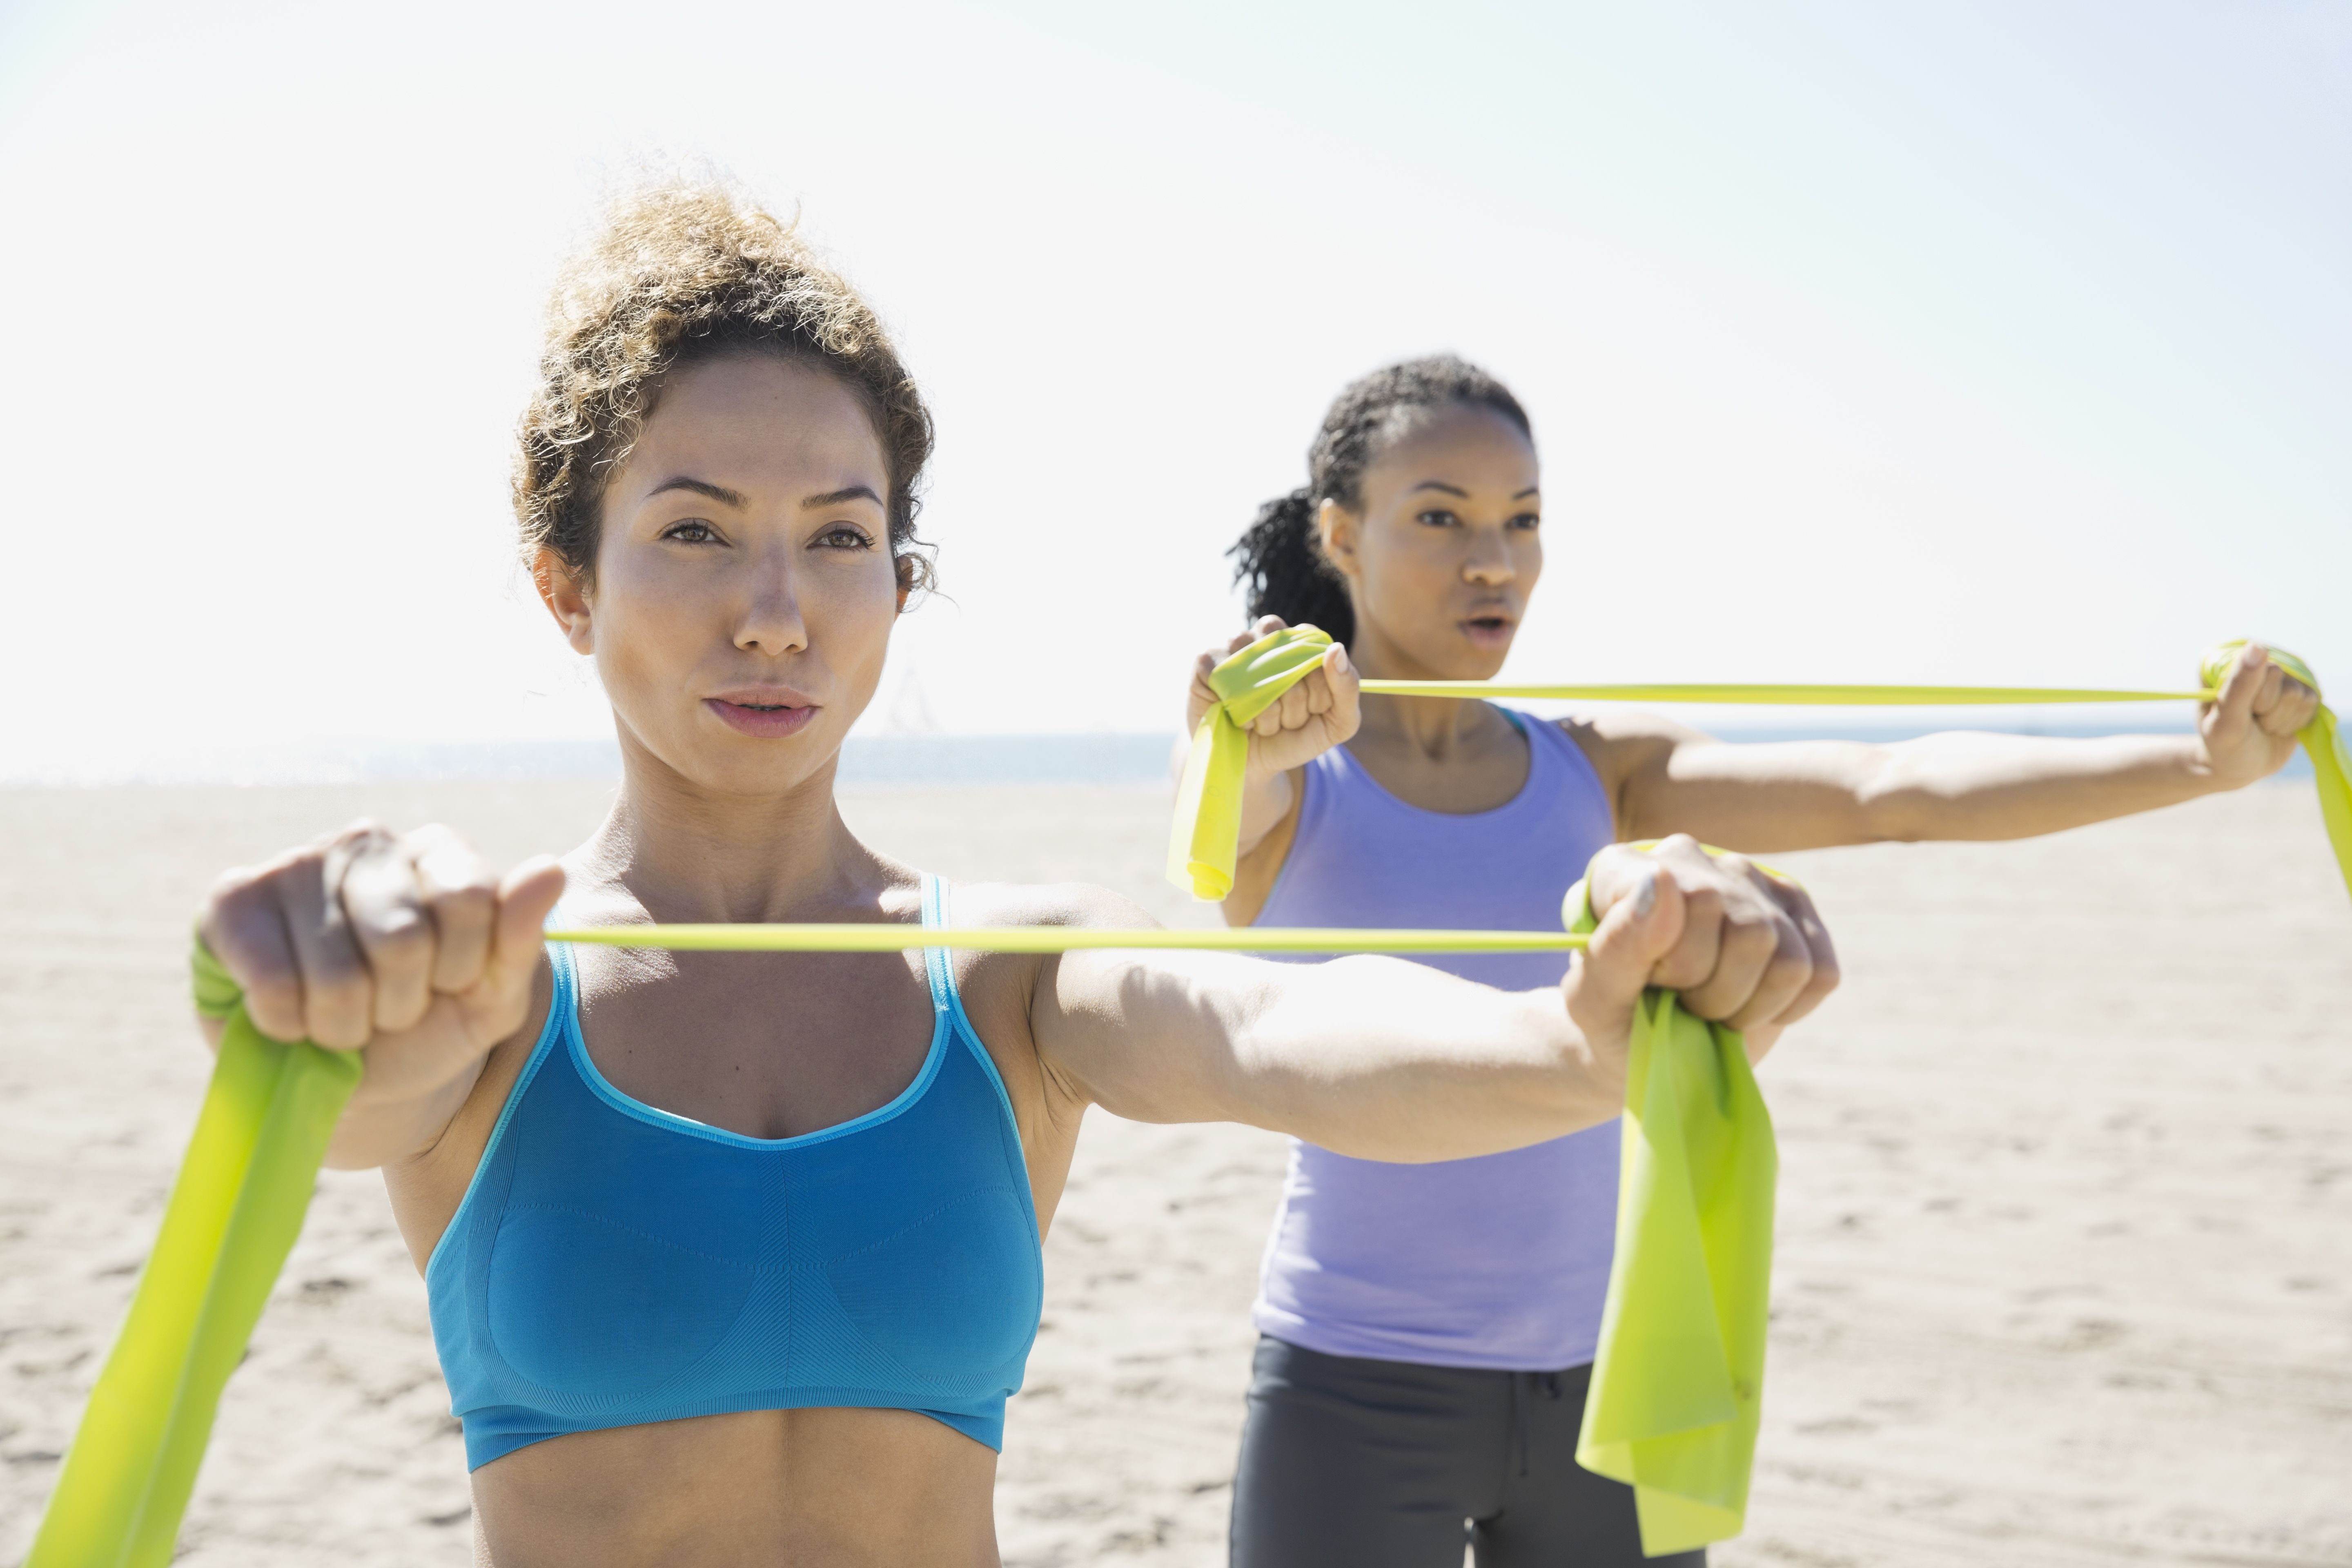 Women exercising with resistance band on beach